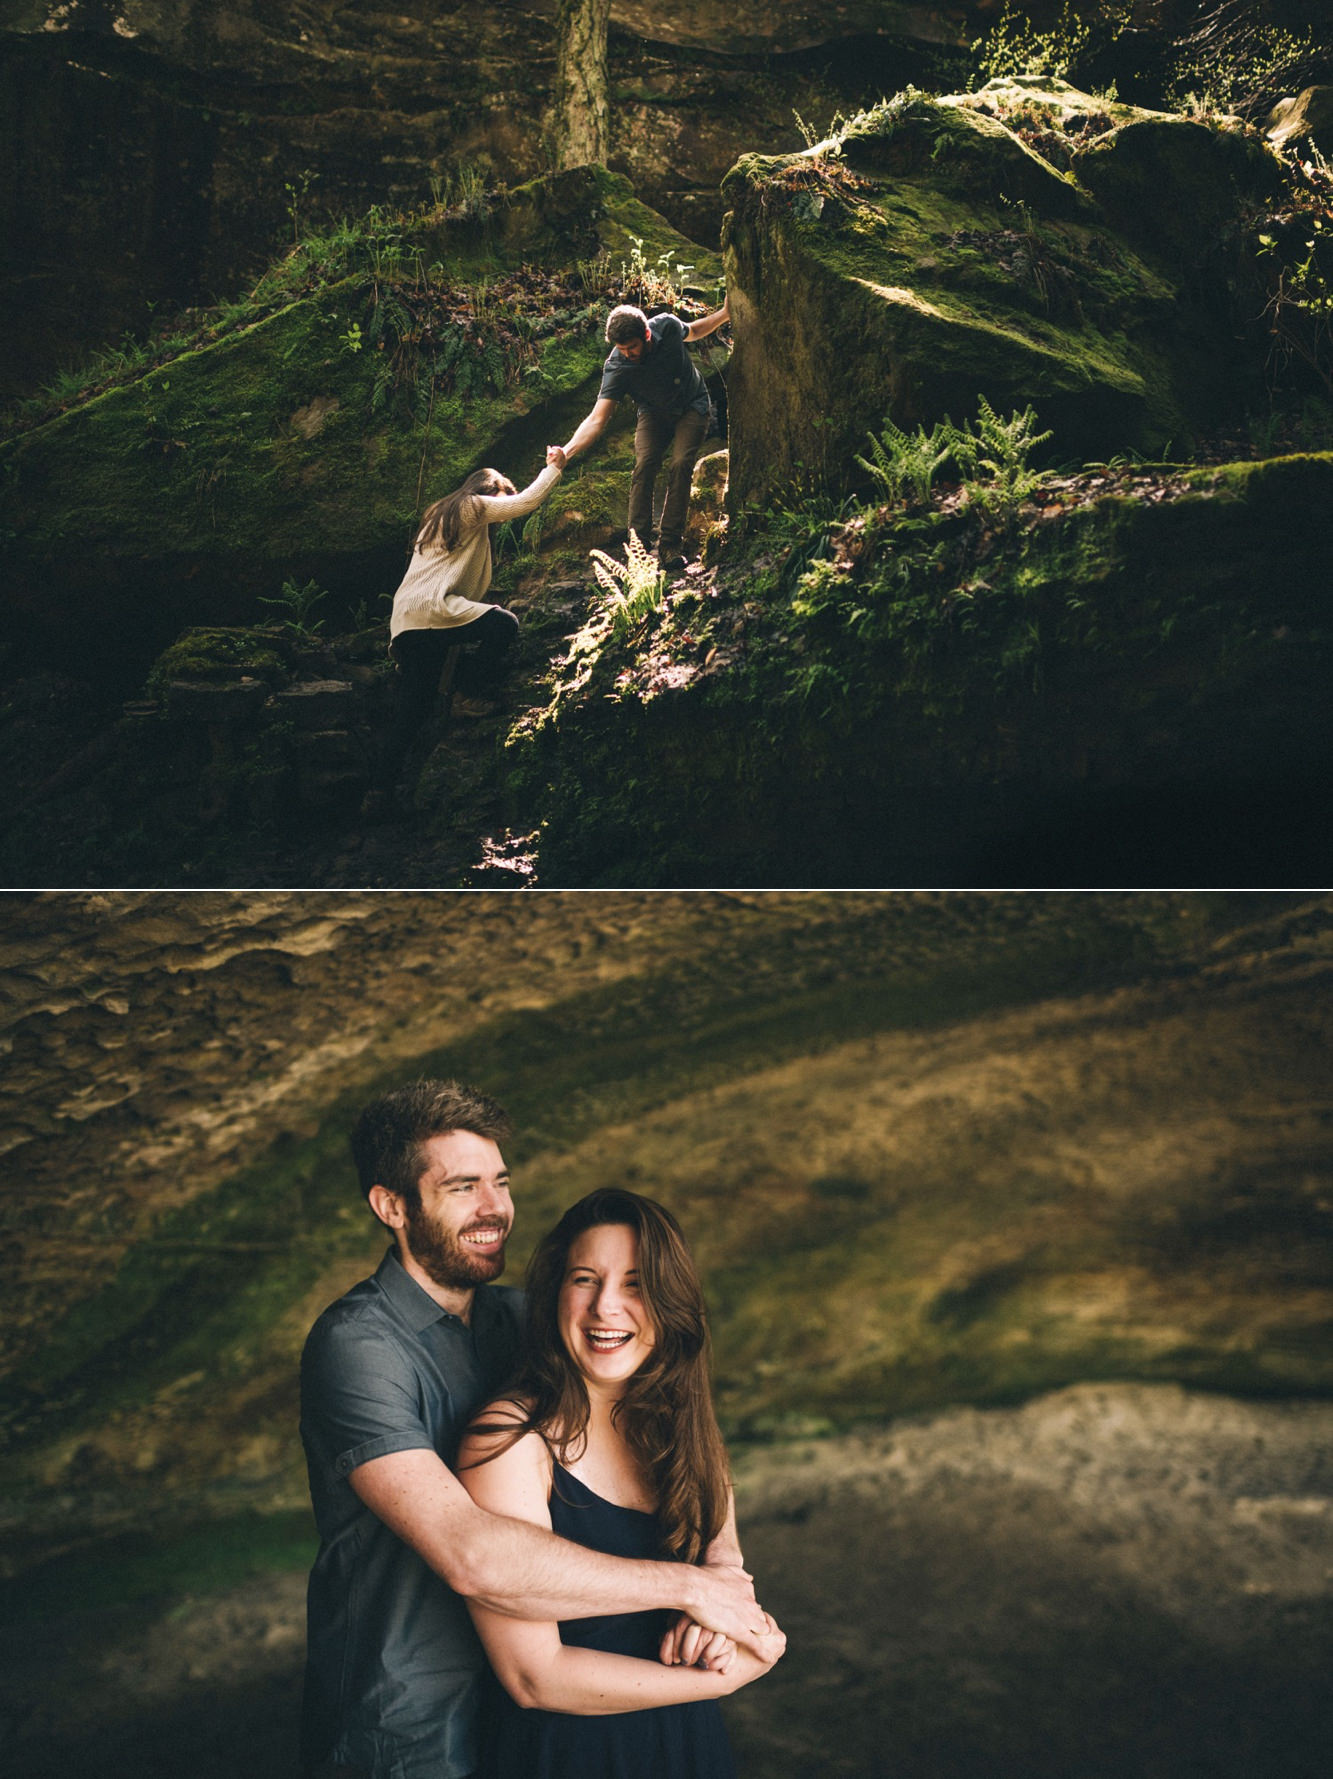 Hiking-Engagement-Session-By-Louisville-Kentucky-Wedding-Photographer-Sarah-Katherine-Davis.jpg